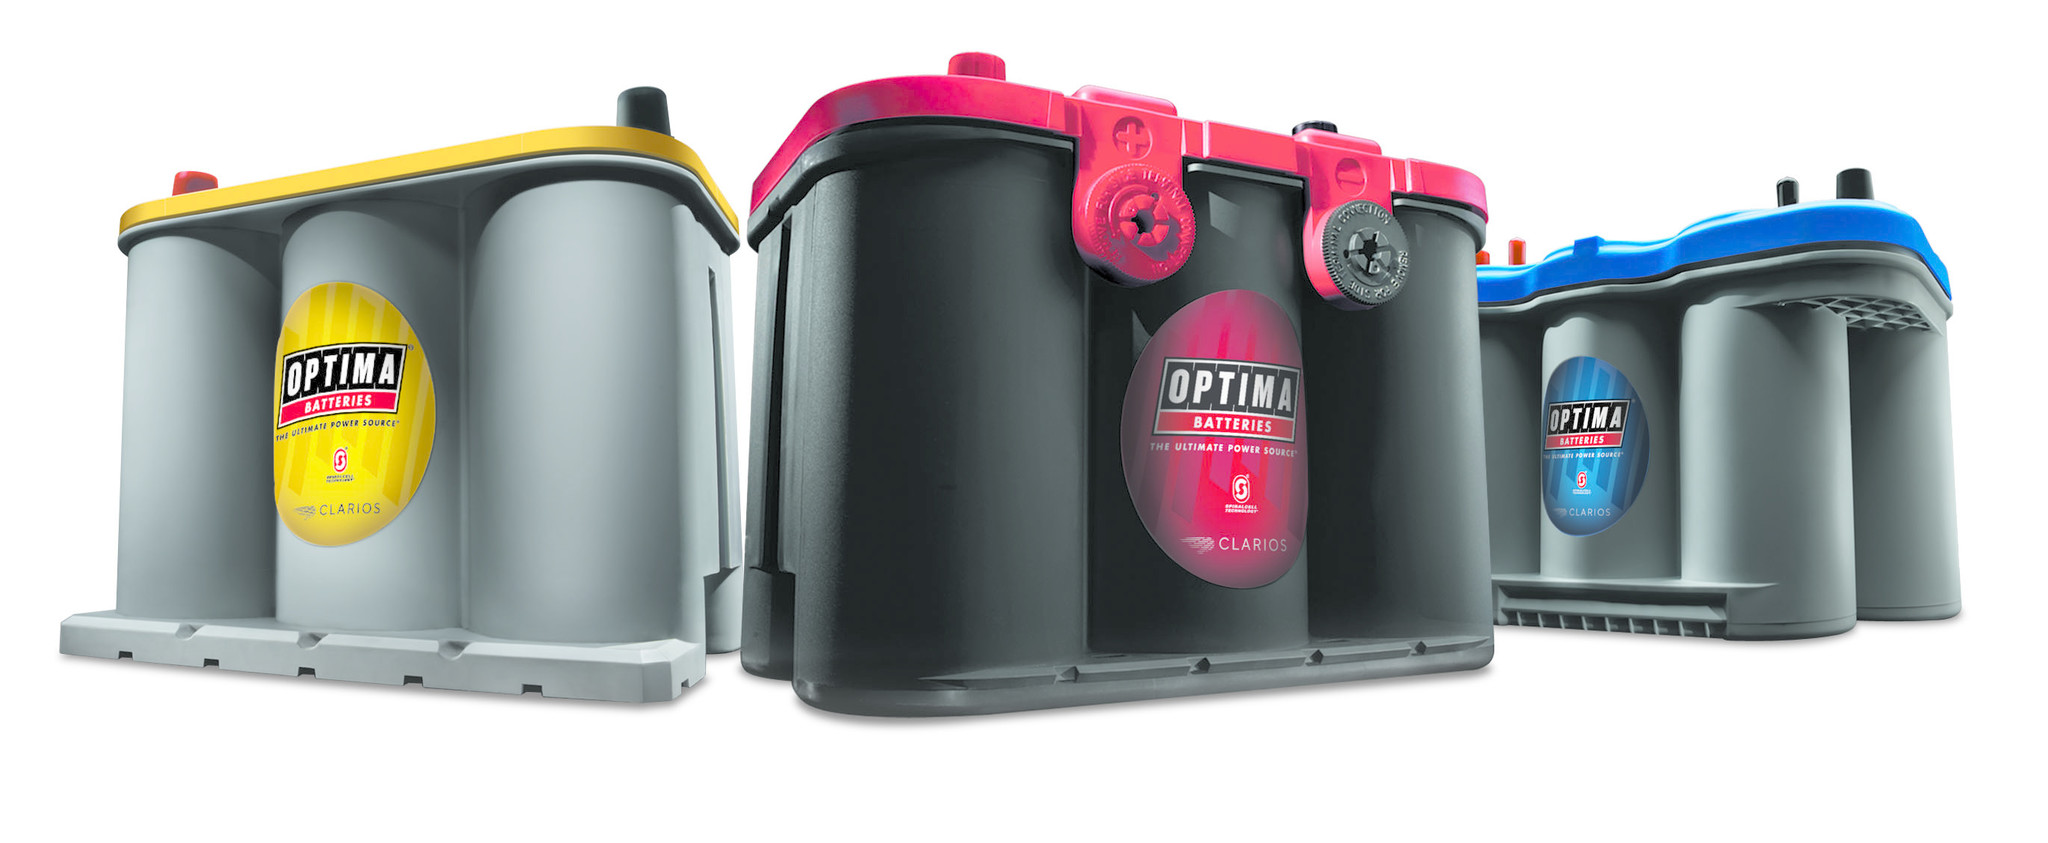 Optima: The Ultimate Power Source